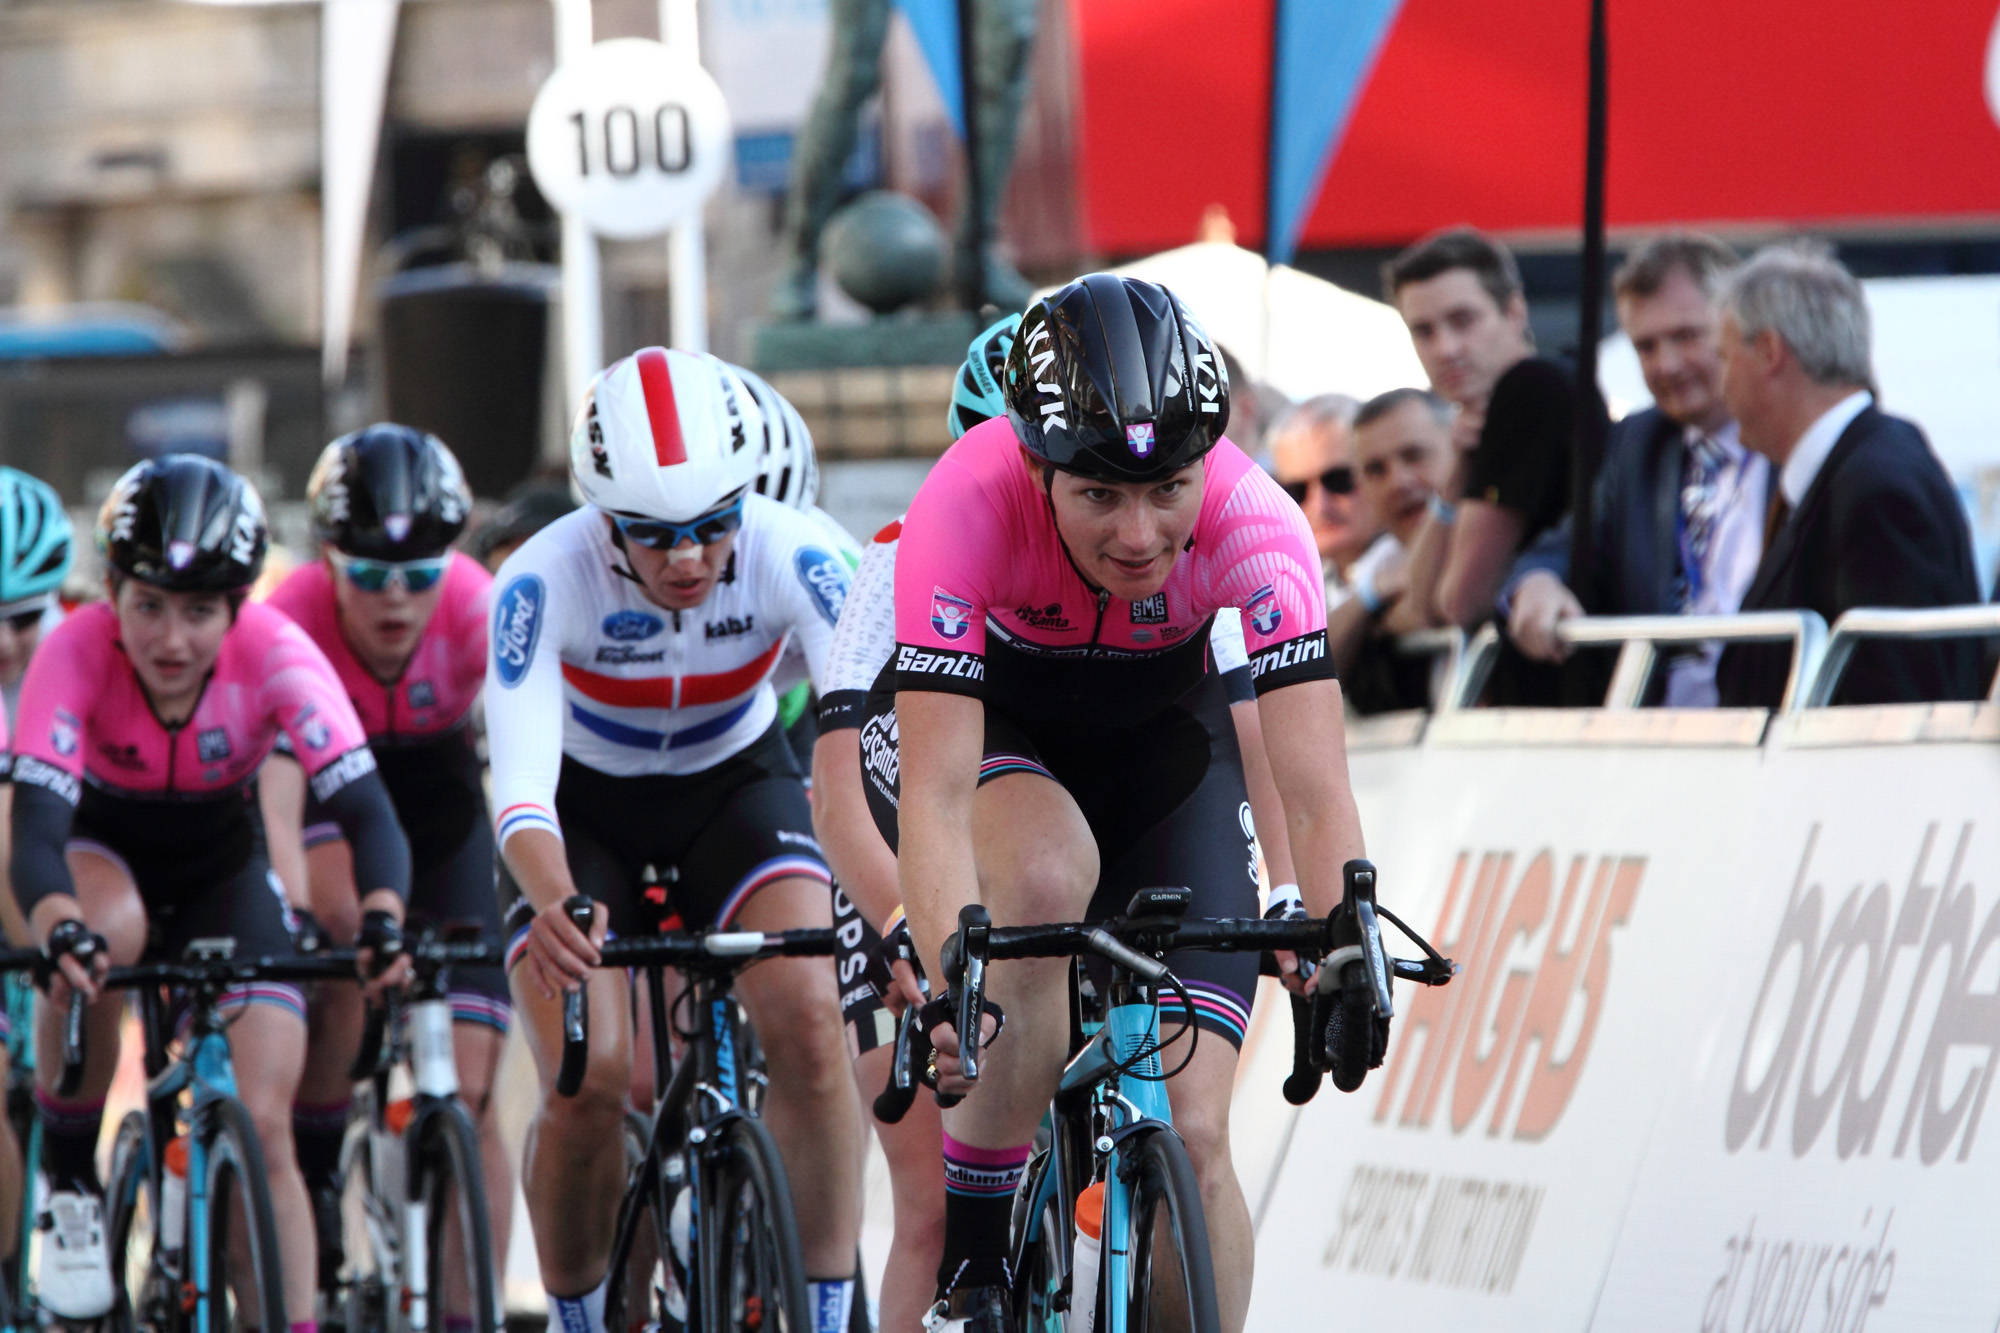 Taking to the lead, late on! Dame Sarah Storey, Podium Ambitions